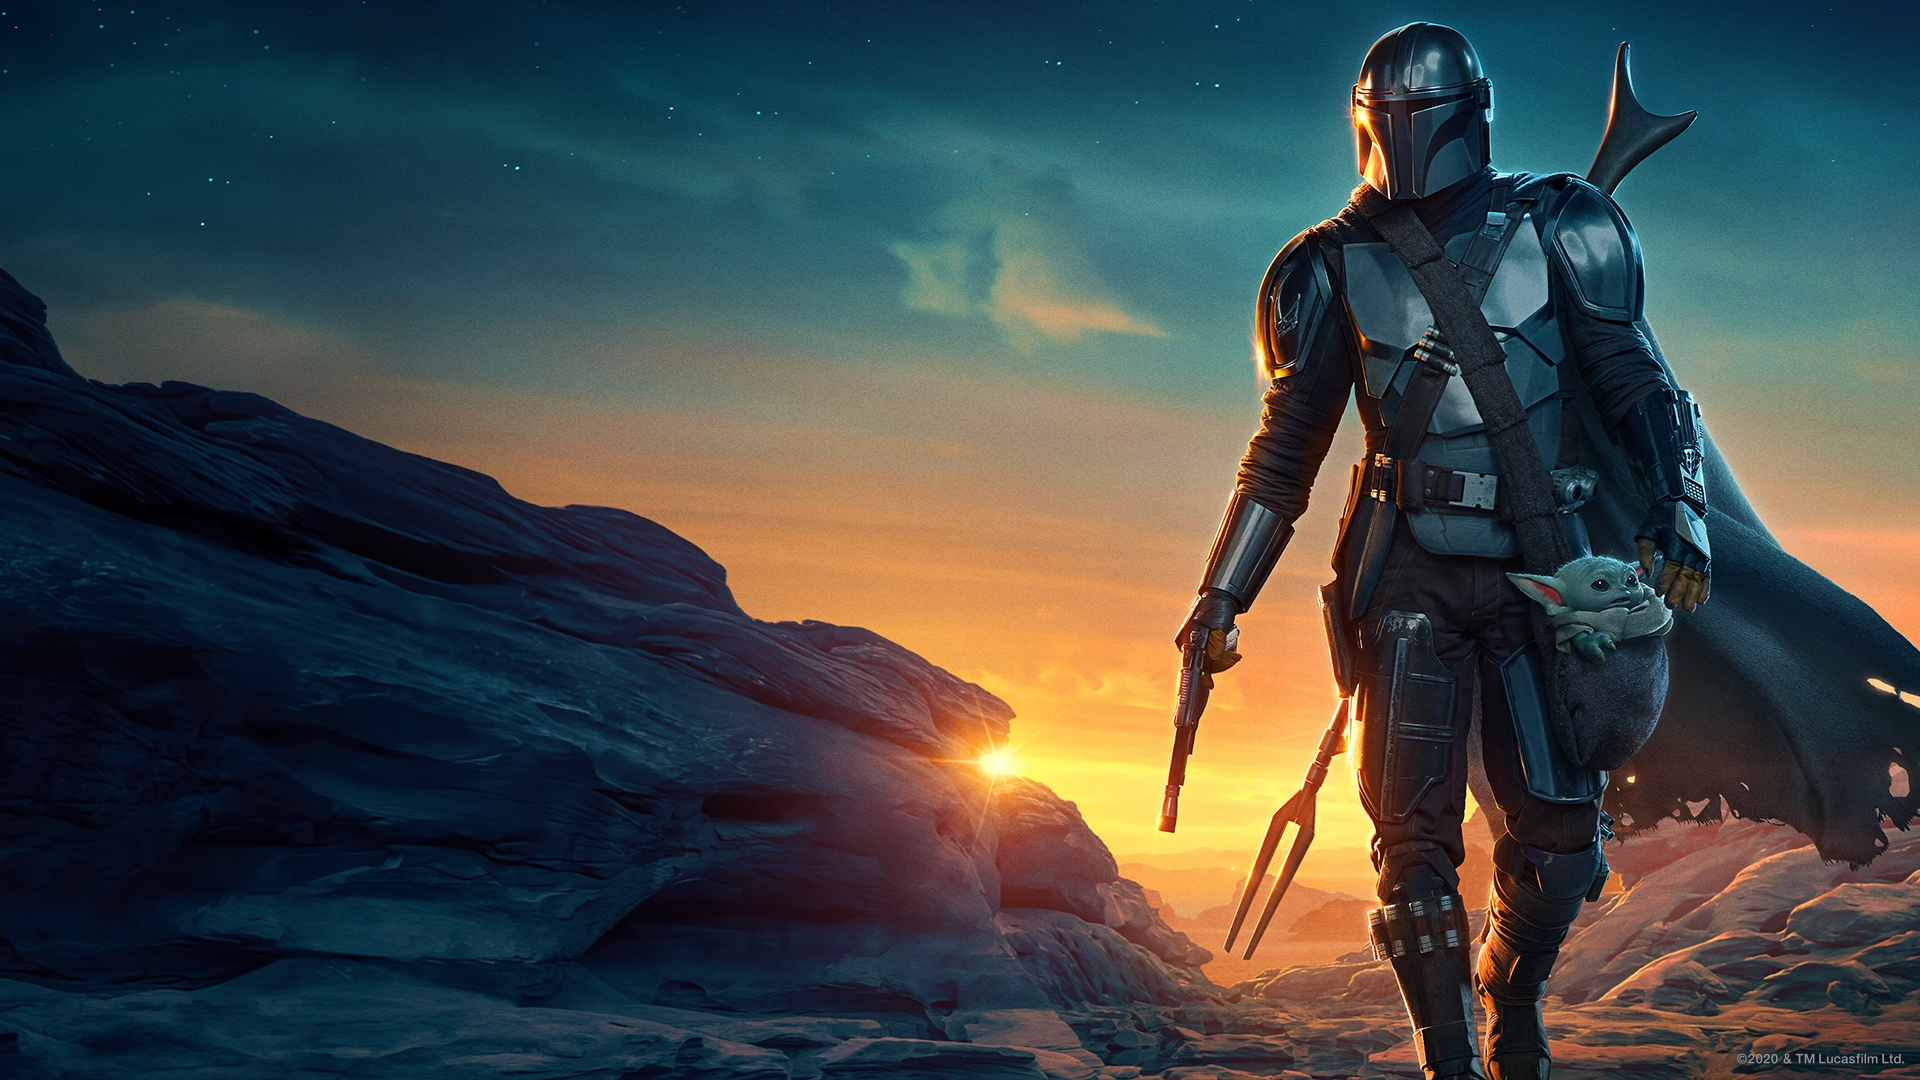 The Mandalorian | Disponible en Disney+ a partir del 17 de noviembre Draft